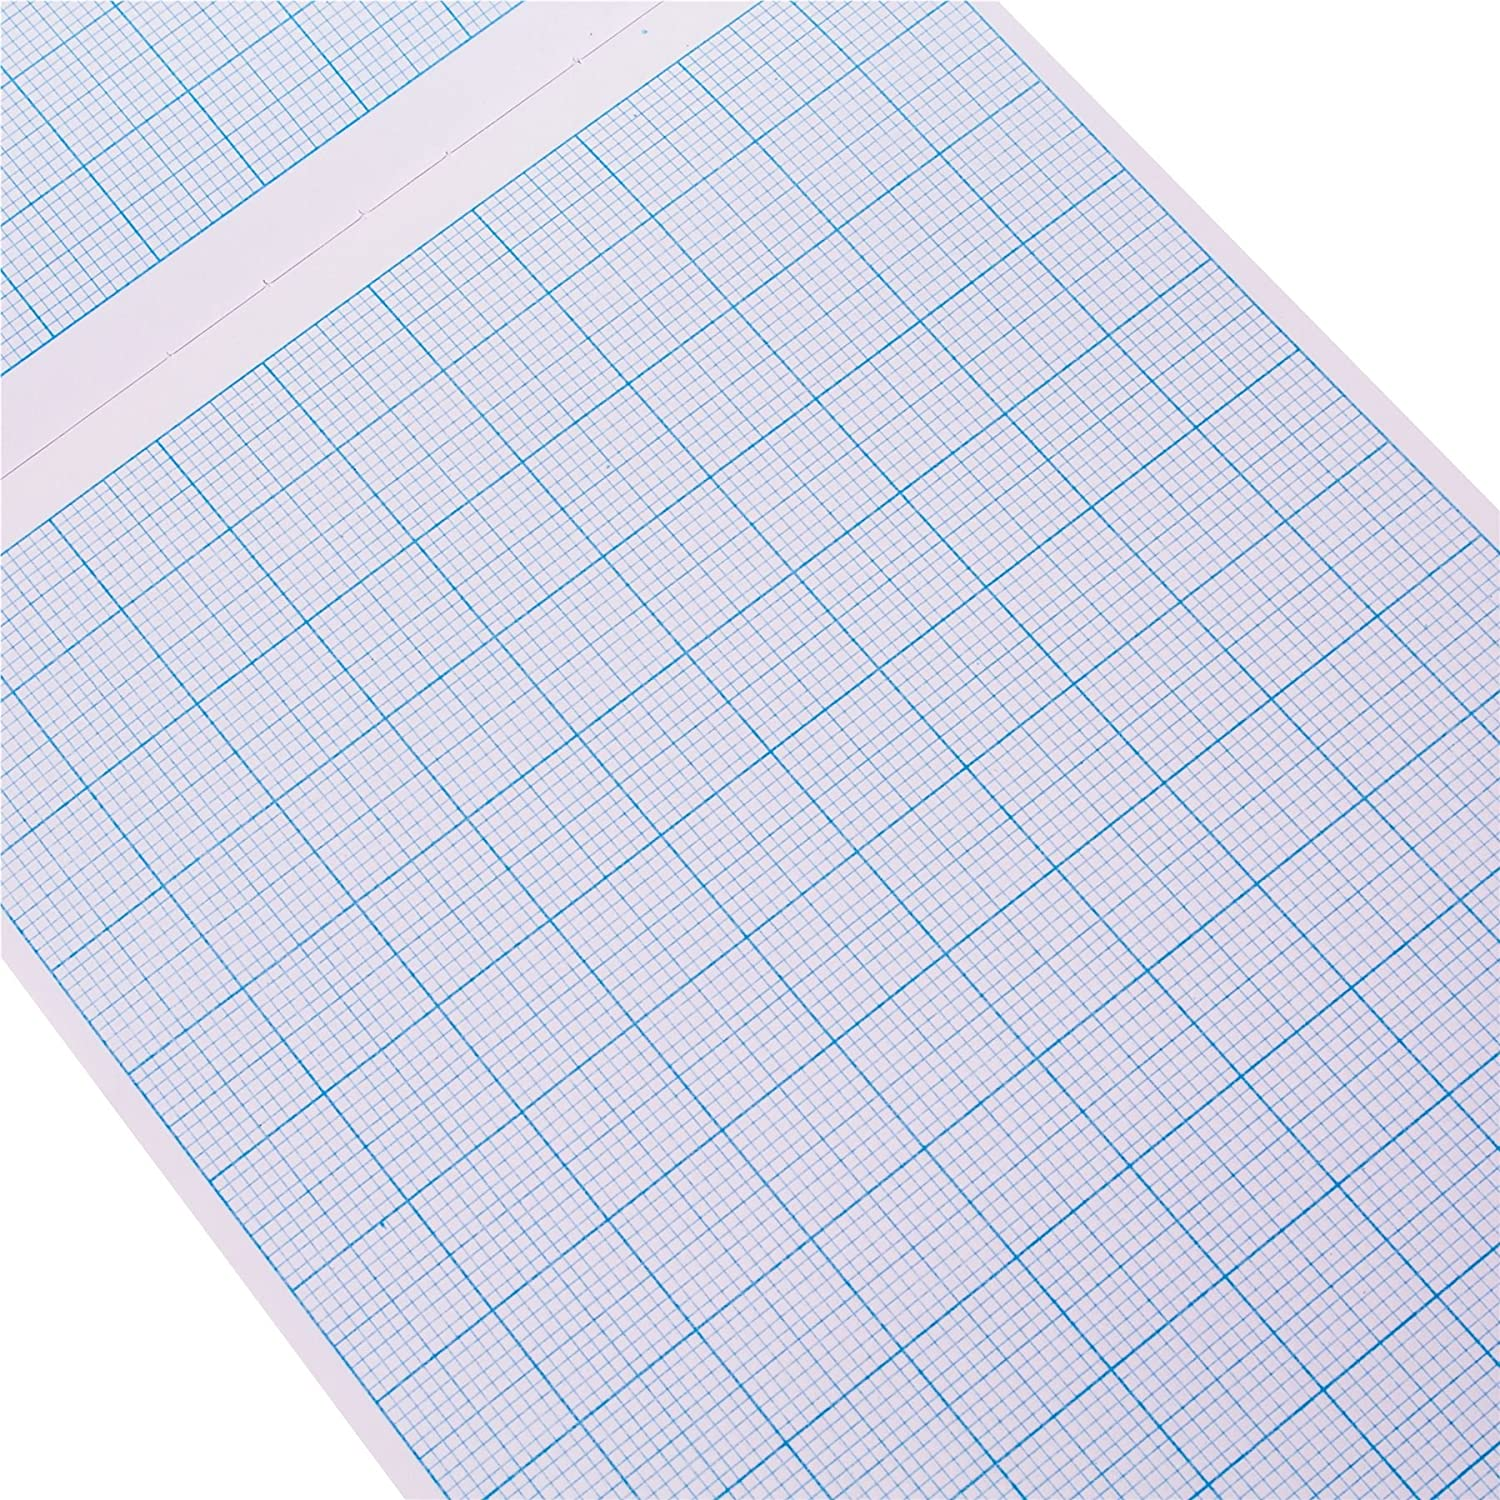 25 a4 graph paper sheets one pad